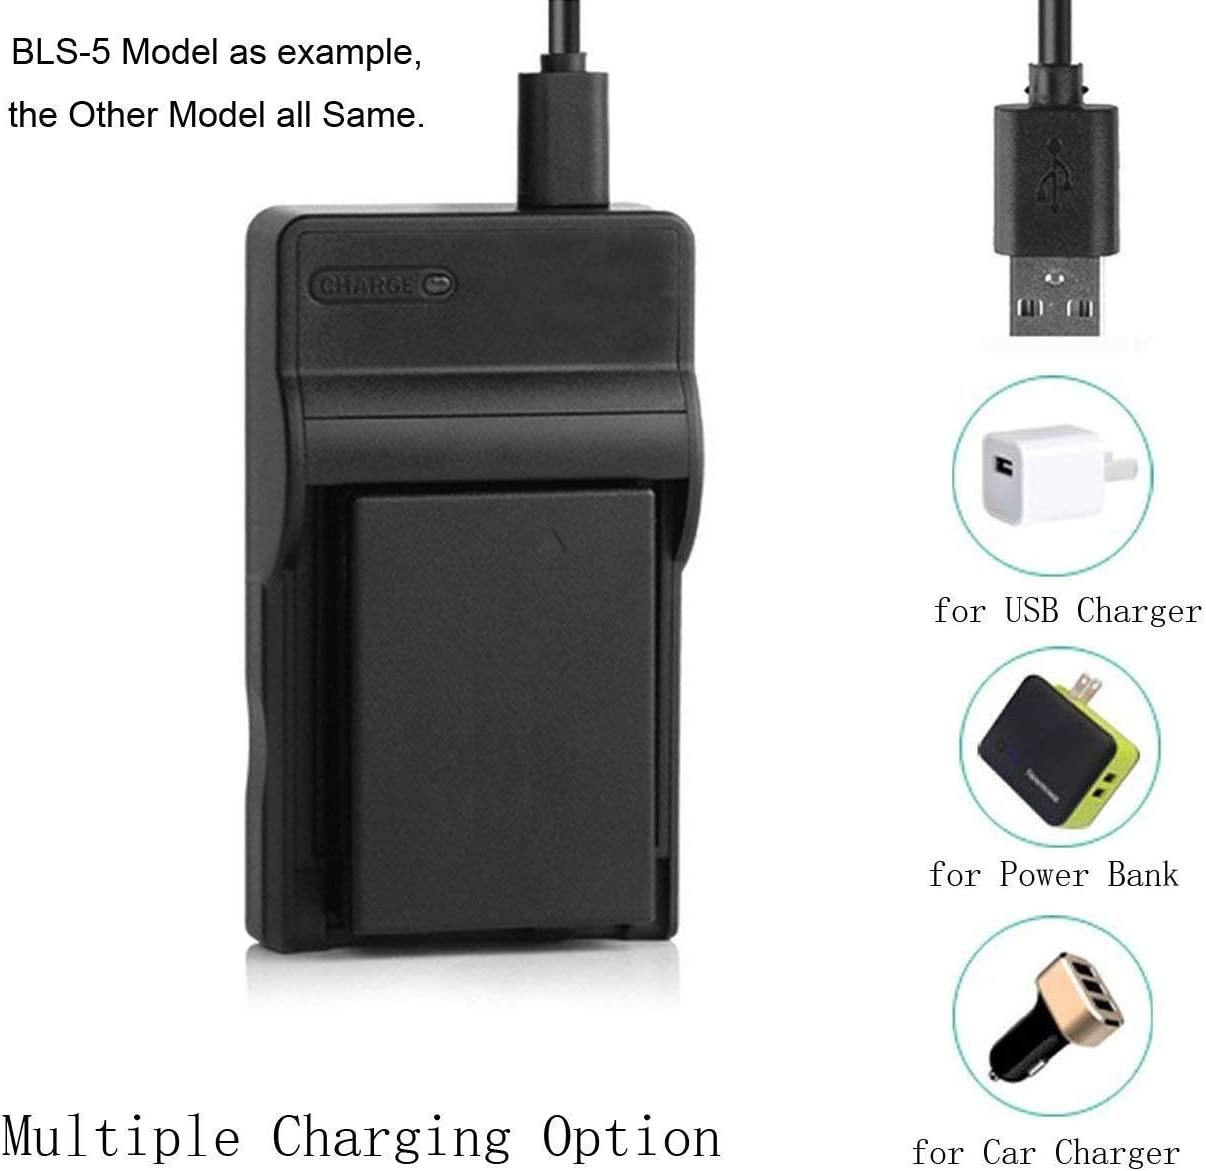 GZ-MG20EX GZ-MG20EZ Digital Camcorder GZ-MG20EY GZ-MG20EK Battery Charger for JVC Everio GZ-MG20E